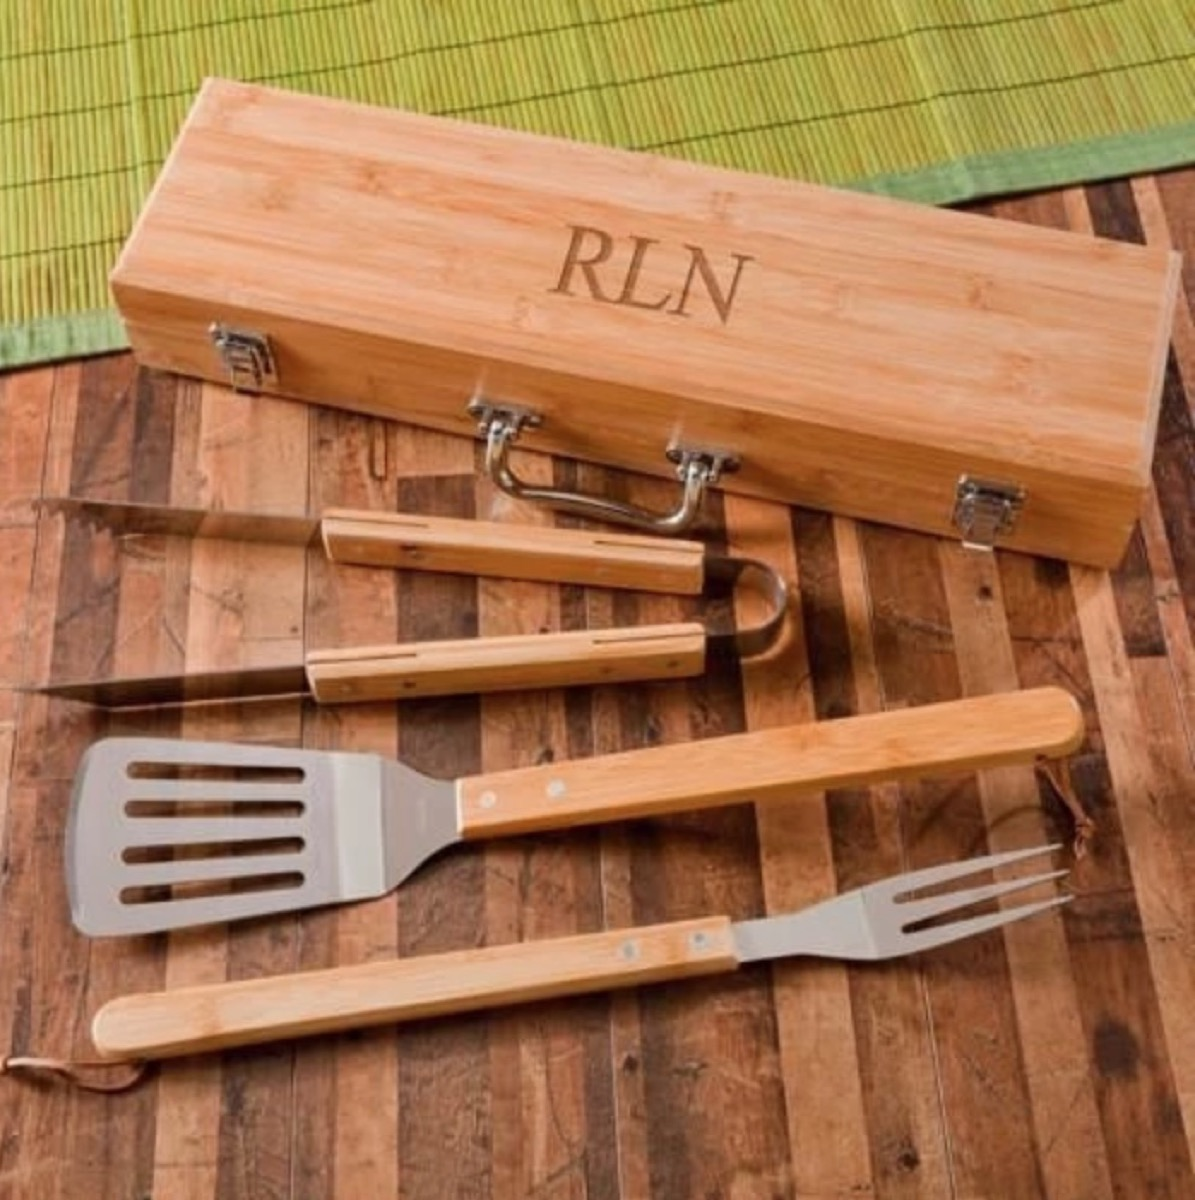 grilling tools with monogrammed wooden box, best friend gifts